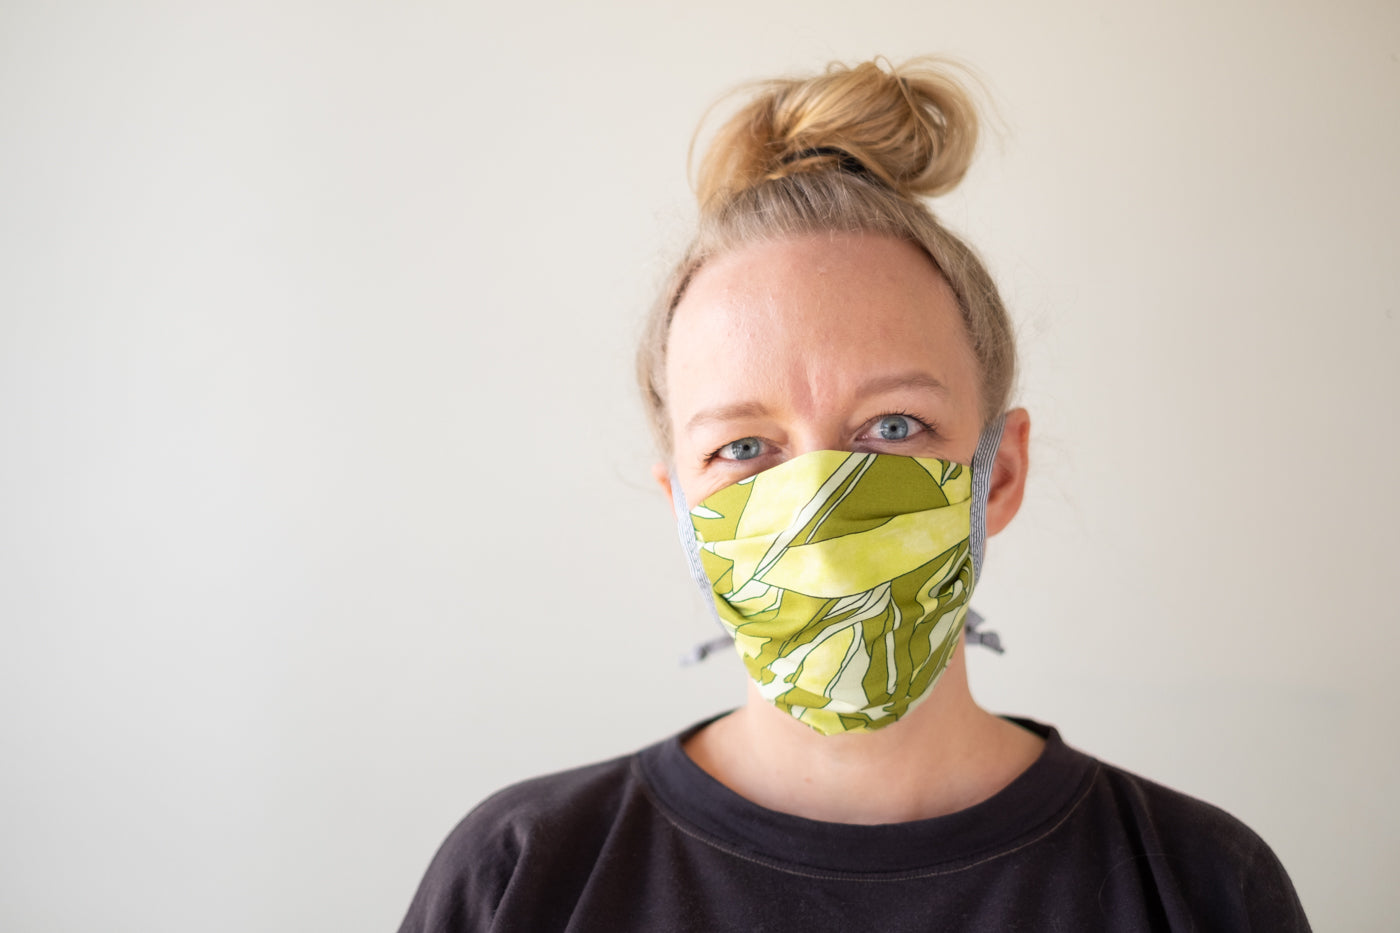 A closely cropped photo of Amber against a white background, she is wearing a fabric mask in an abstract green print and her hair is in a top-knot.